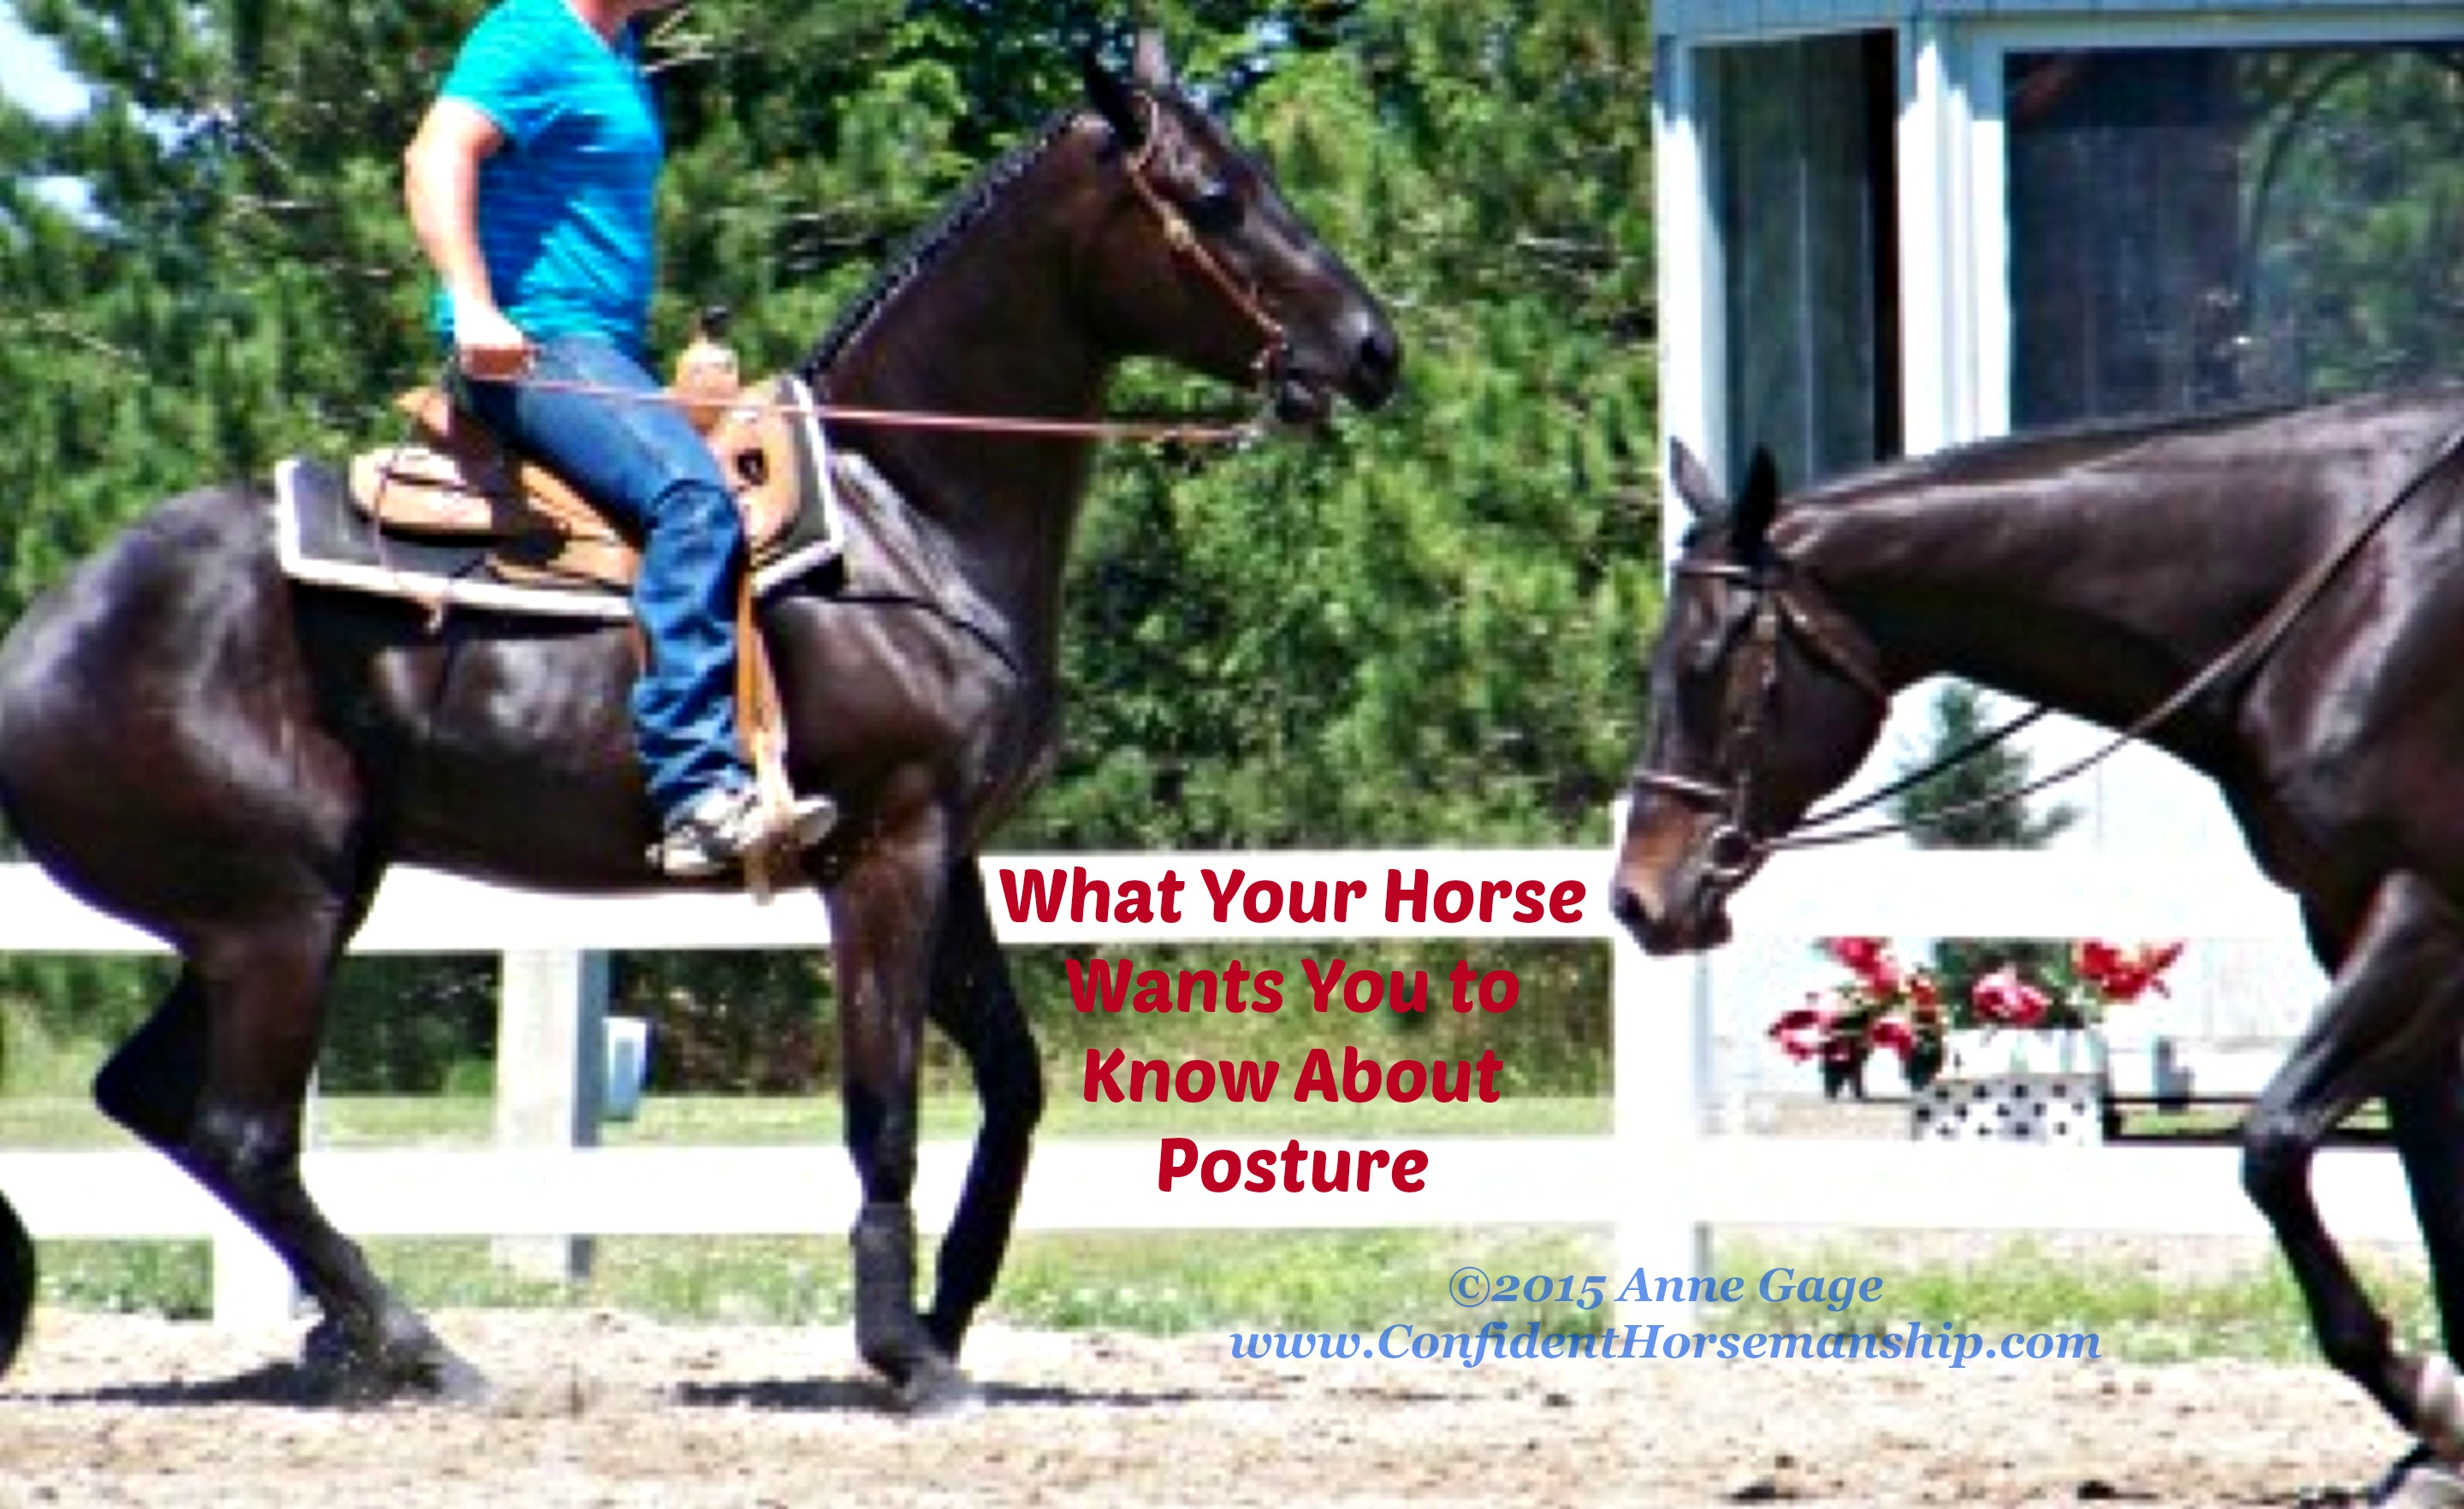 What Your Horse Wants You to Know About His Posture